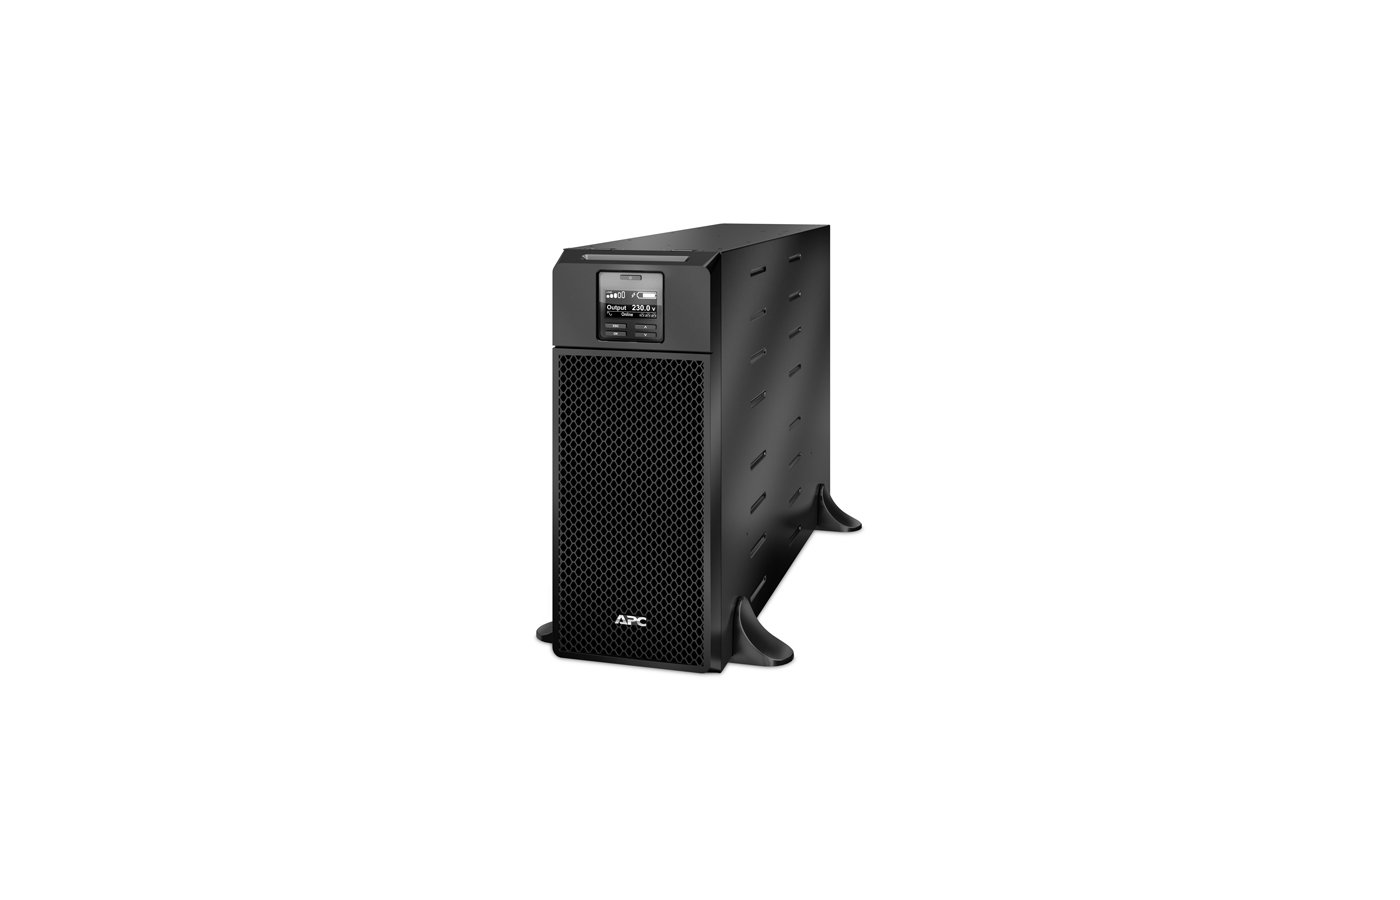 Блок питания APC Smart-UPS SRT SRT6KXLI 6000W черный Входной 230V /Выход 230V, Interface Port Contact Closure, RJ